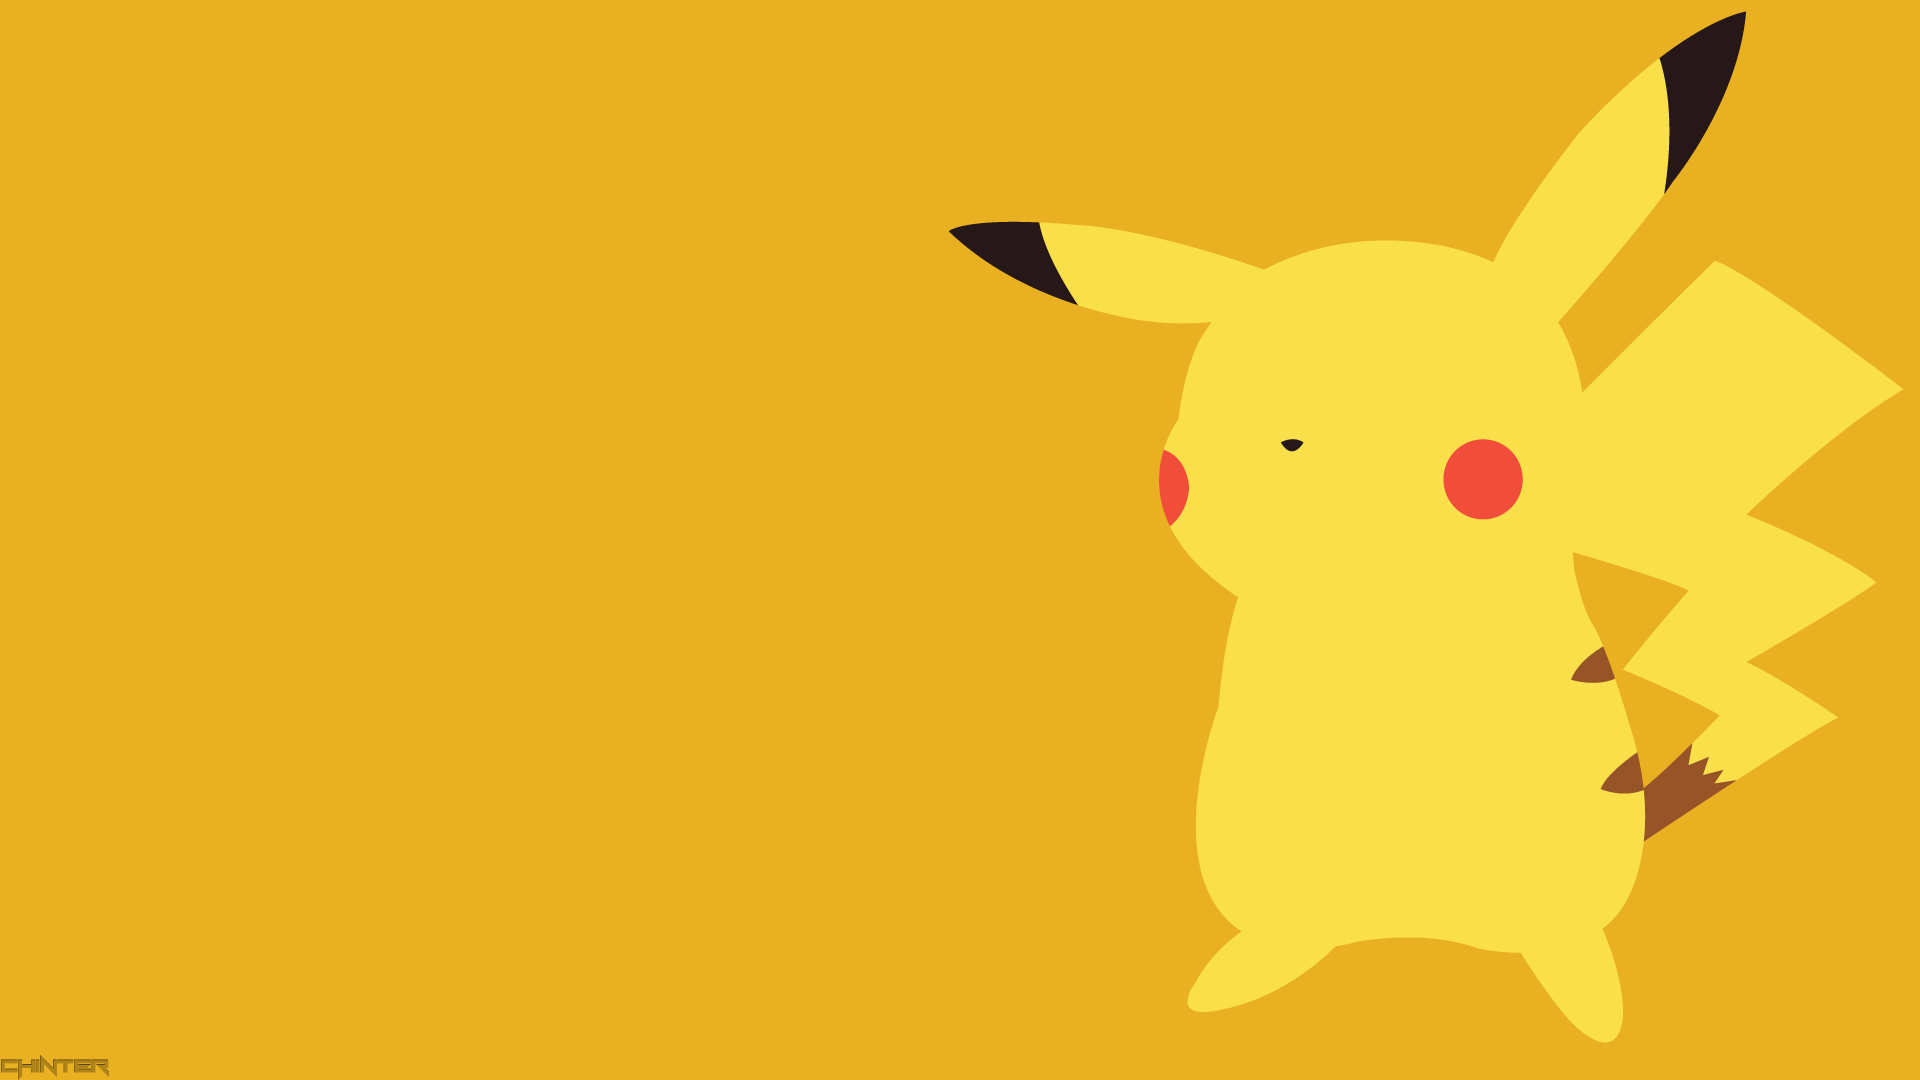 Pikachu clipart wallpaper Pikachu Minimal by Wallpaper by